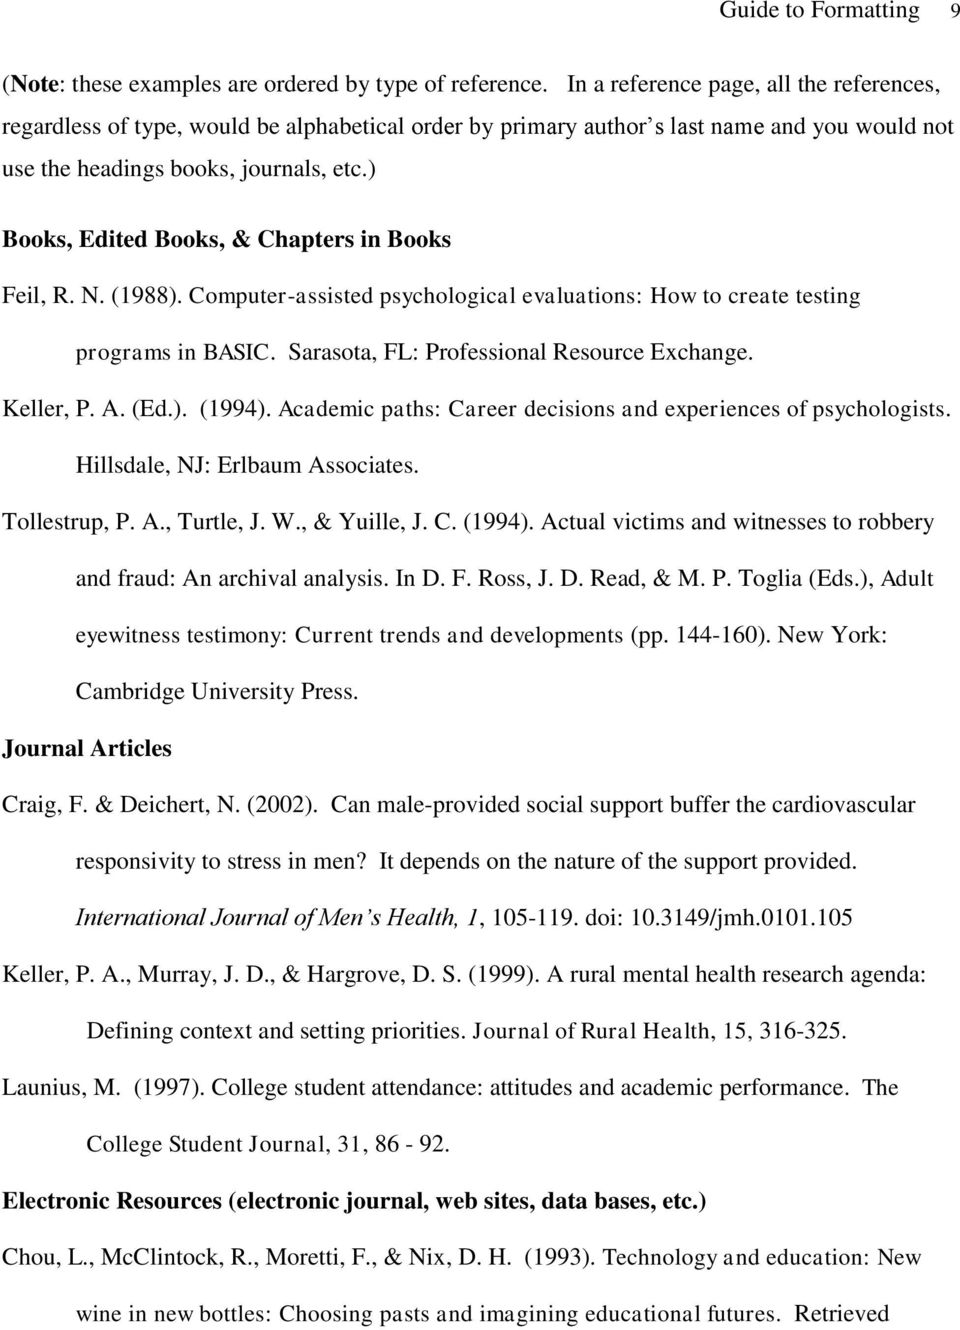 ) Books, Edited Books, & Chapters in Books Feil, R. N. (1988). Computer-assisted psychological evaluations: How to create testing programs in BASIC. Sarasota, FL: Professional Resource Exchange.